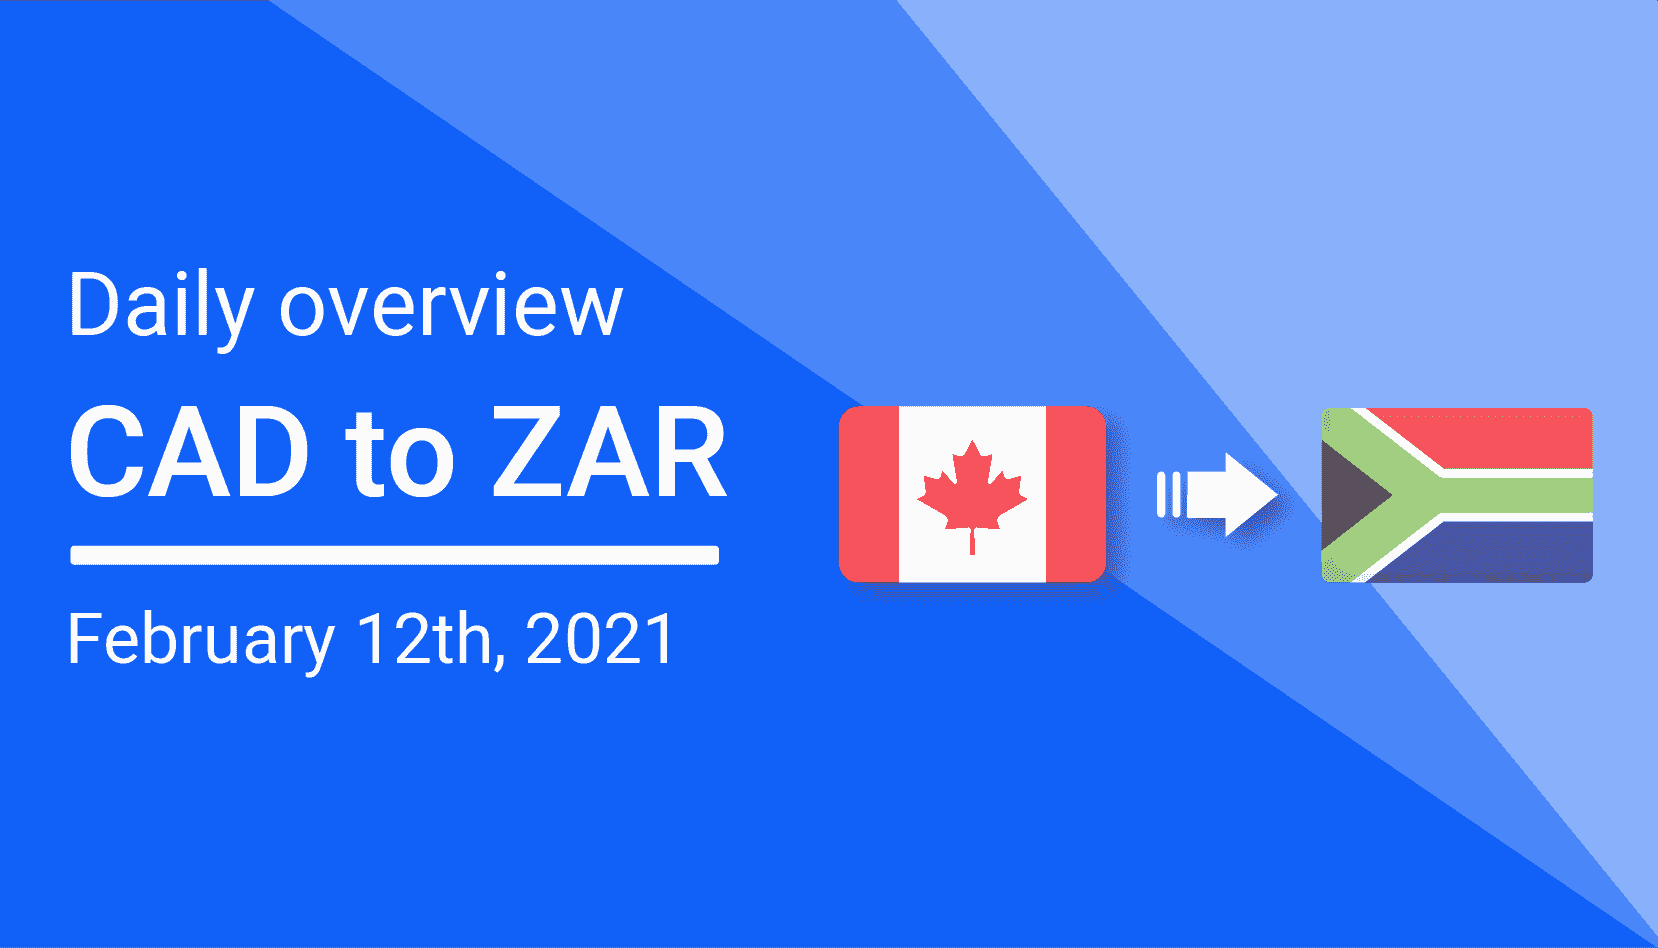 CAD to ZAR Daily Overview: February 12th